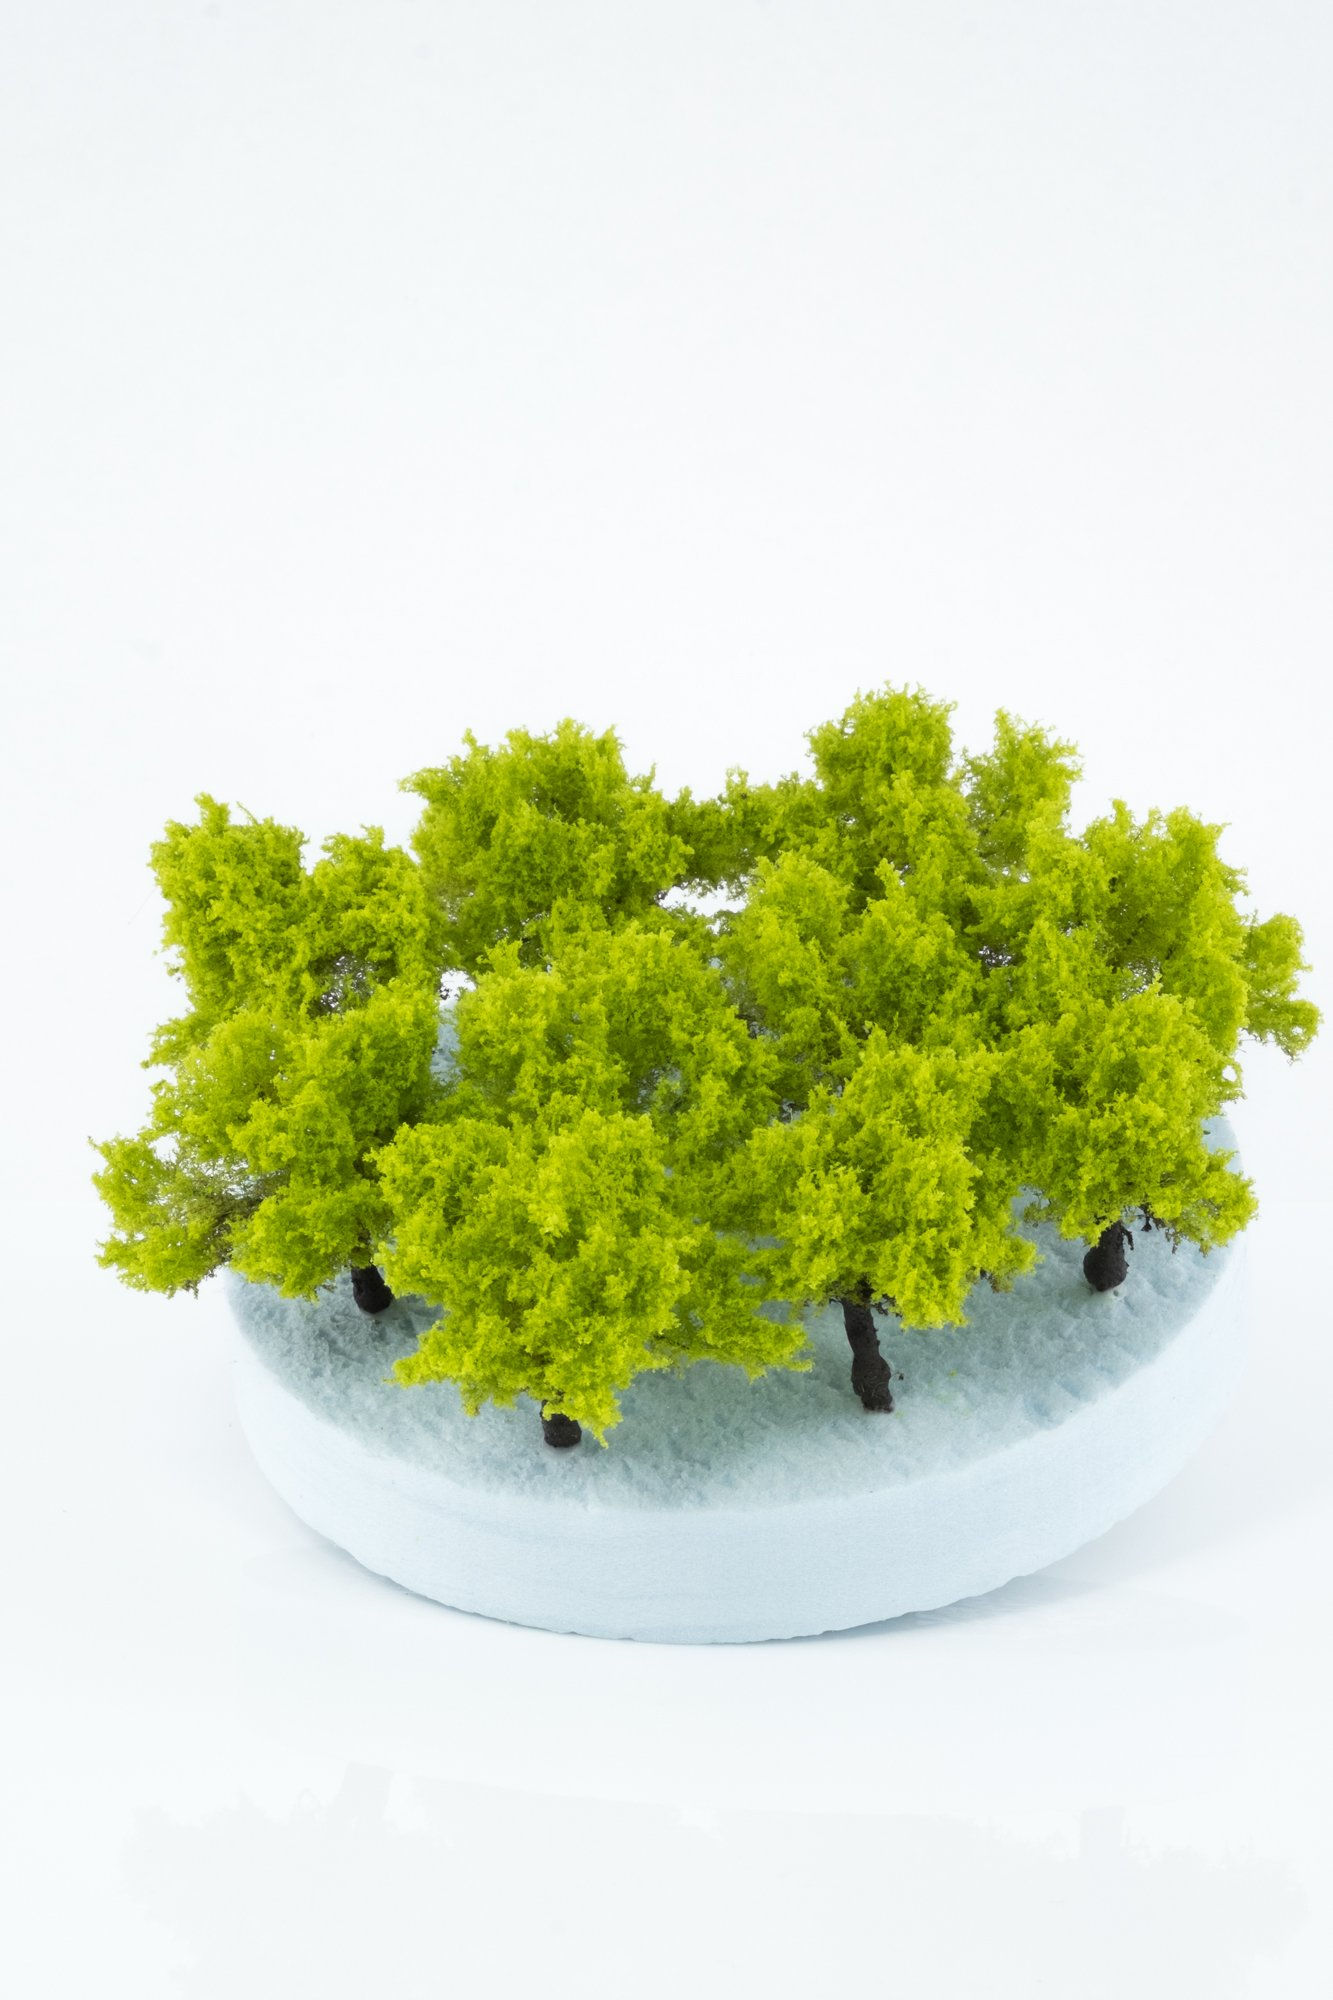 Ten pieces, regular light green model bushes. Size between 2 and 4 cm. Made from high quality model supplies by Primo Models.